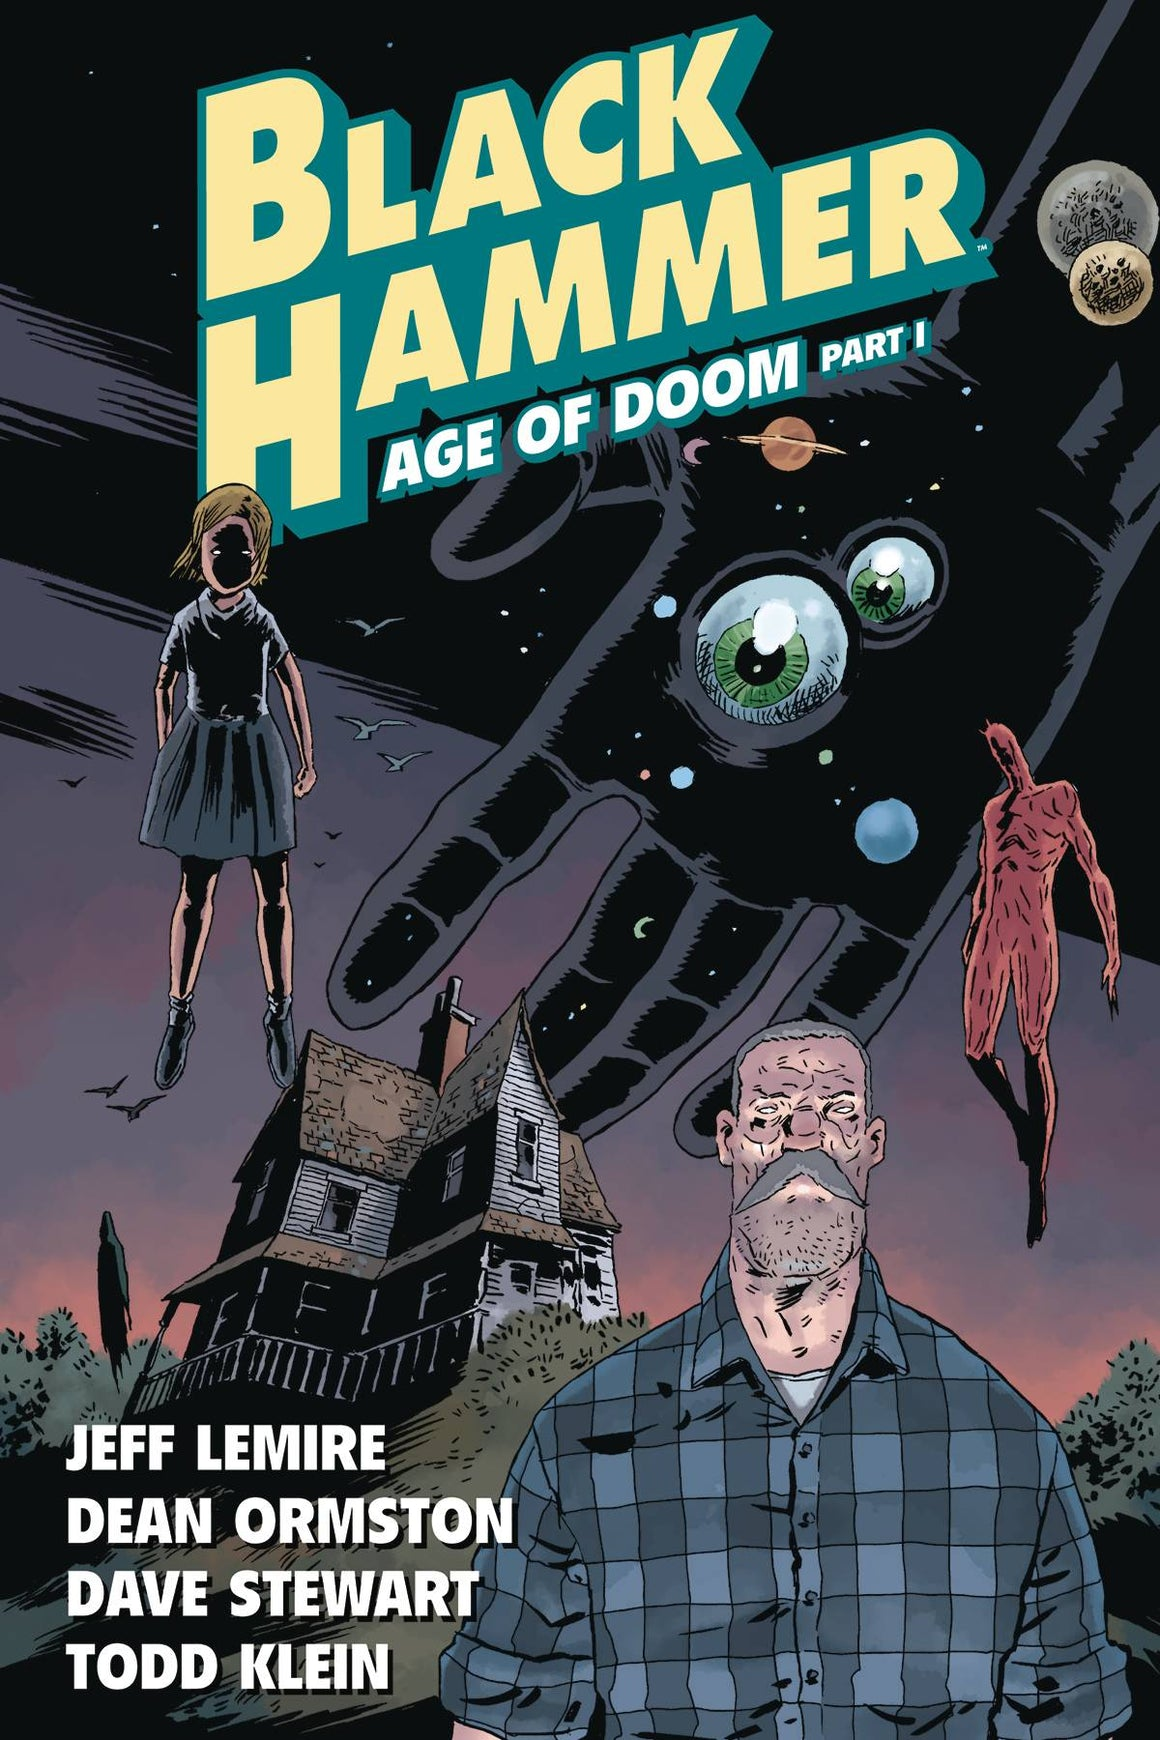 Black Hammer Vol 03 Age of Doom Part 1